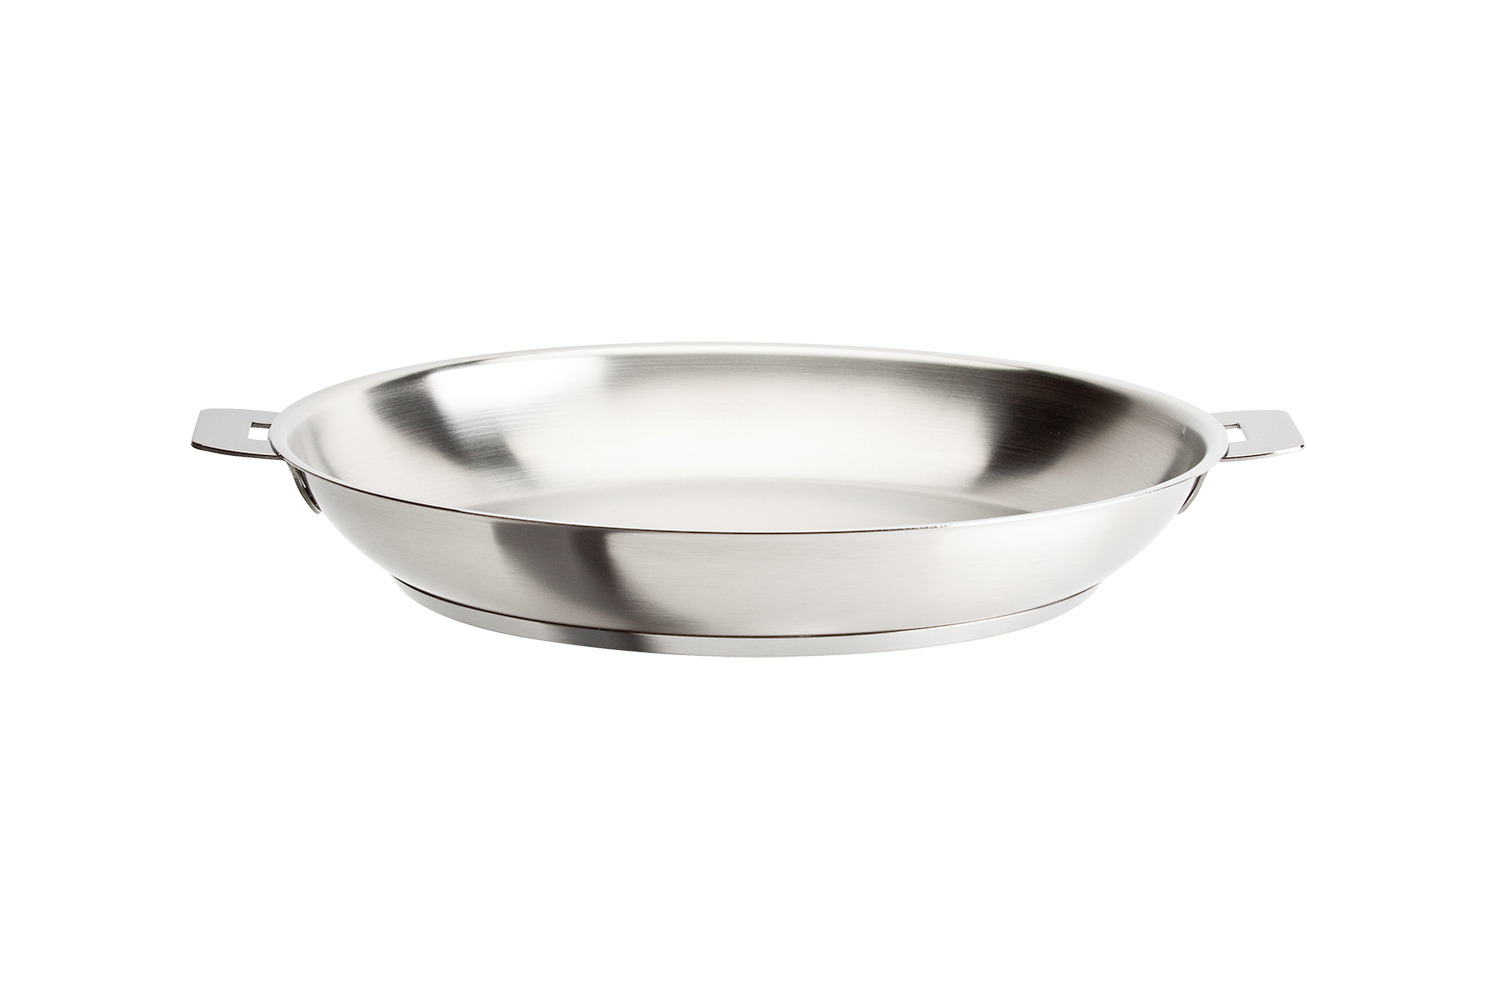 Cristel Strate Brushed Stainless 8.5 inch Fry Pan